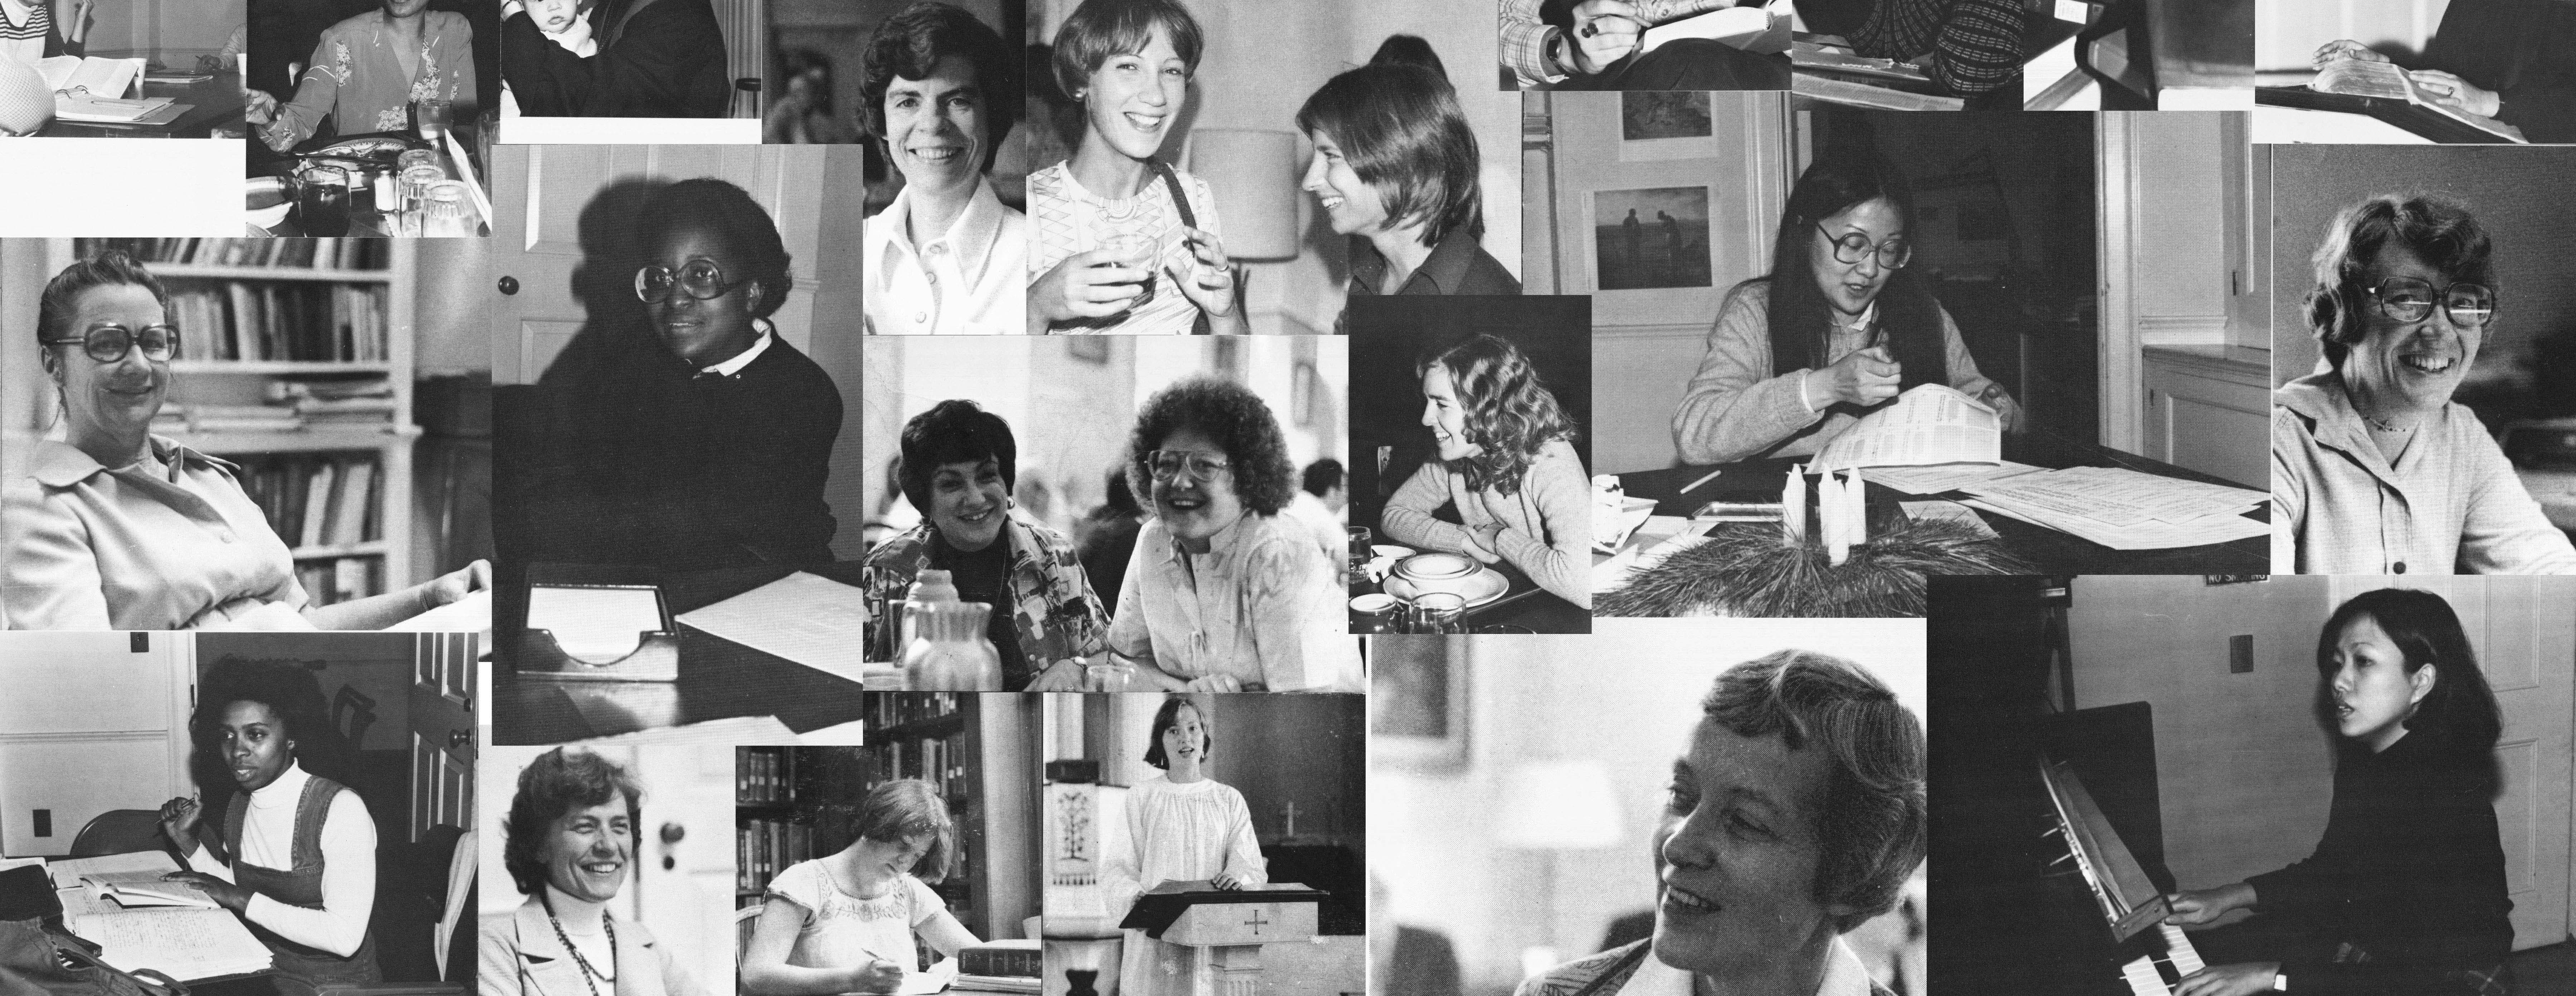 Collage of images of women at Yale Divinity School in the 1970s and 1980s